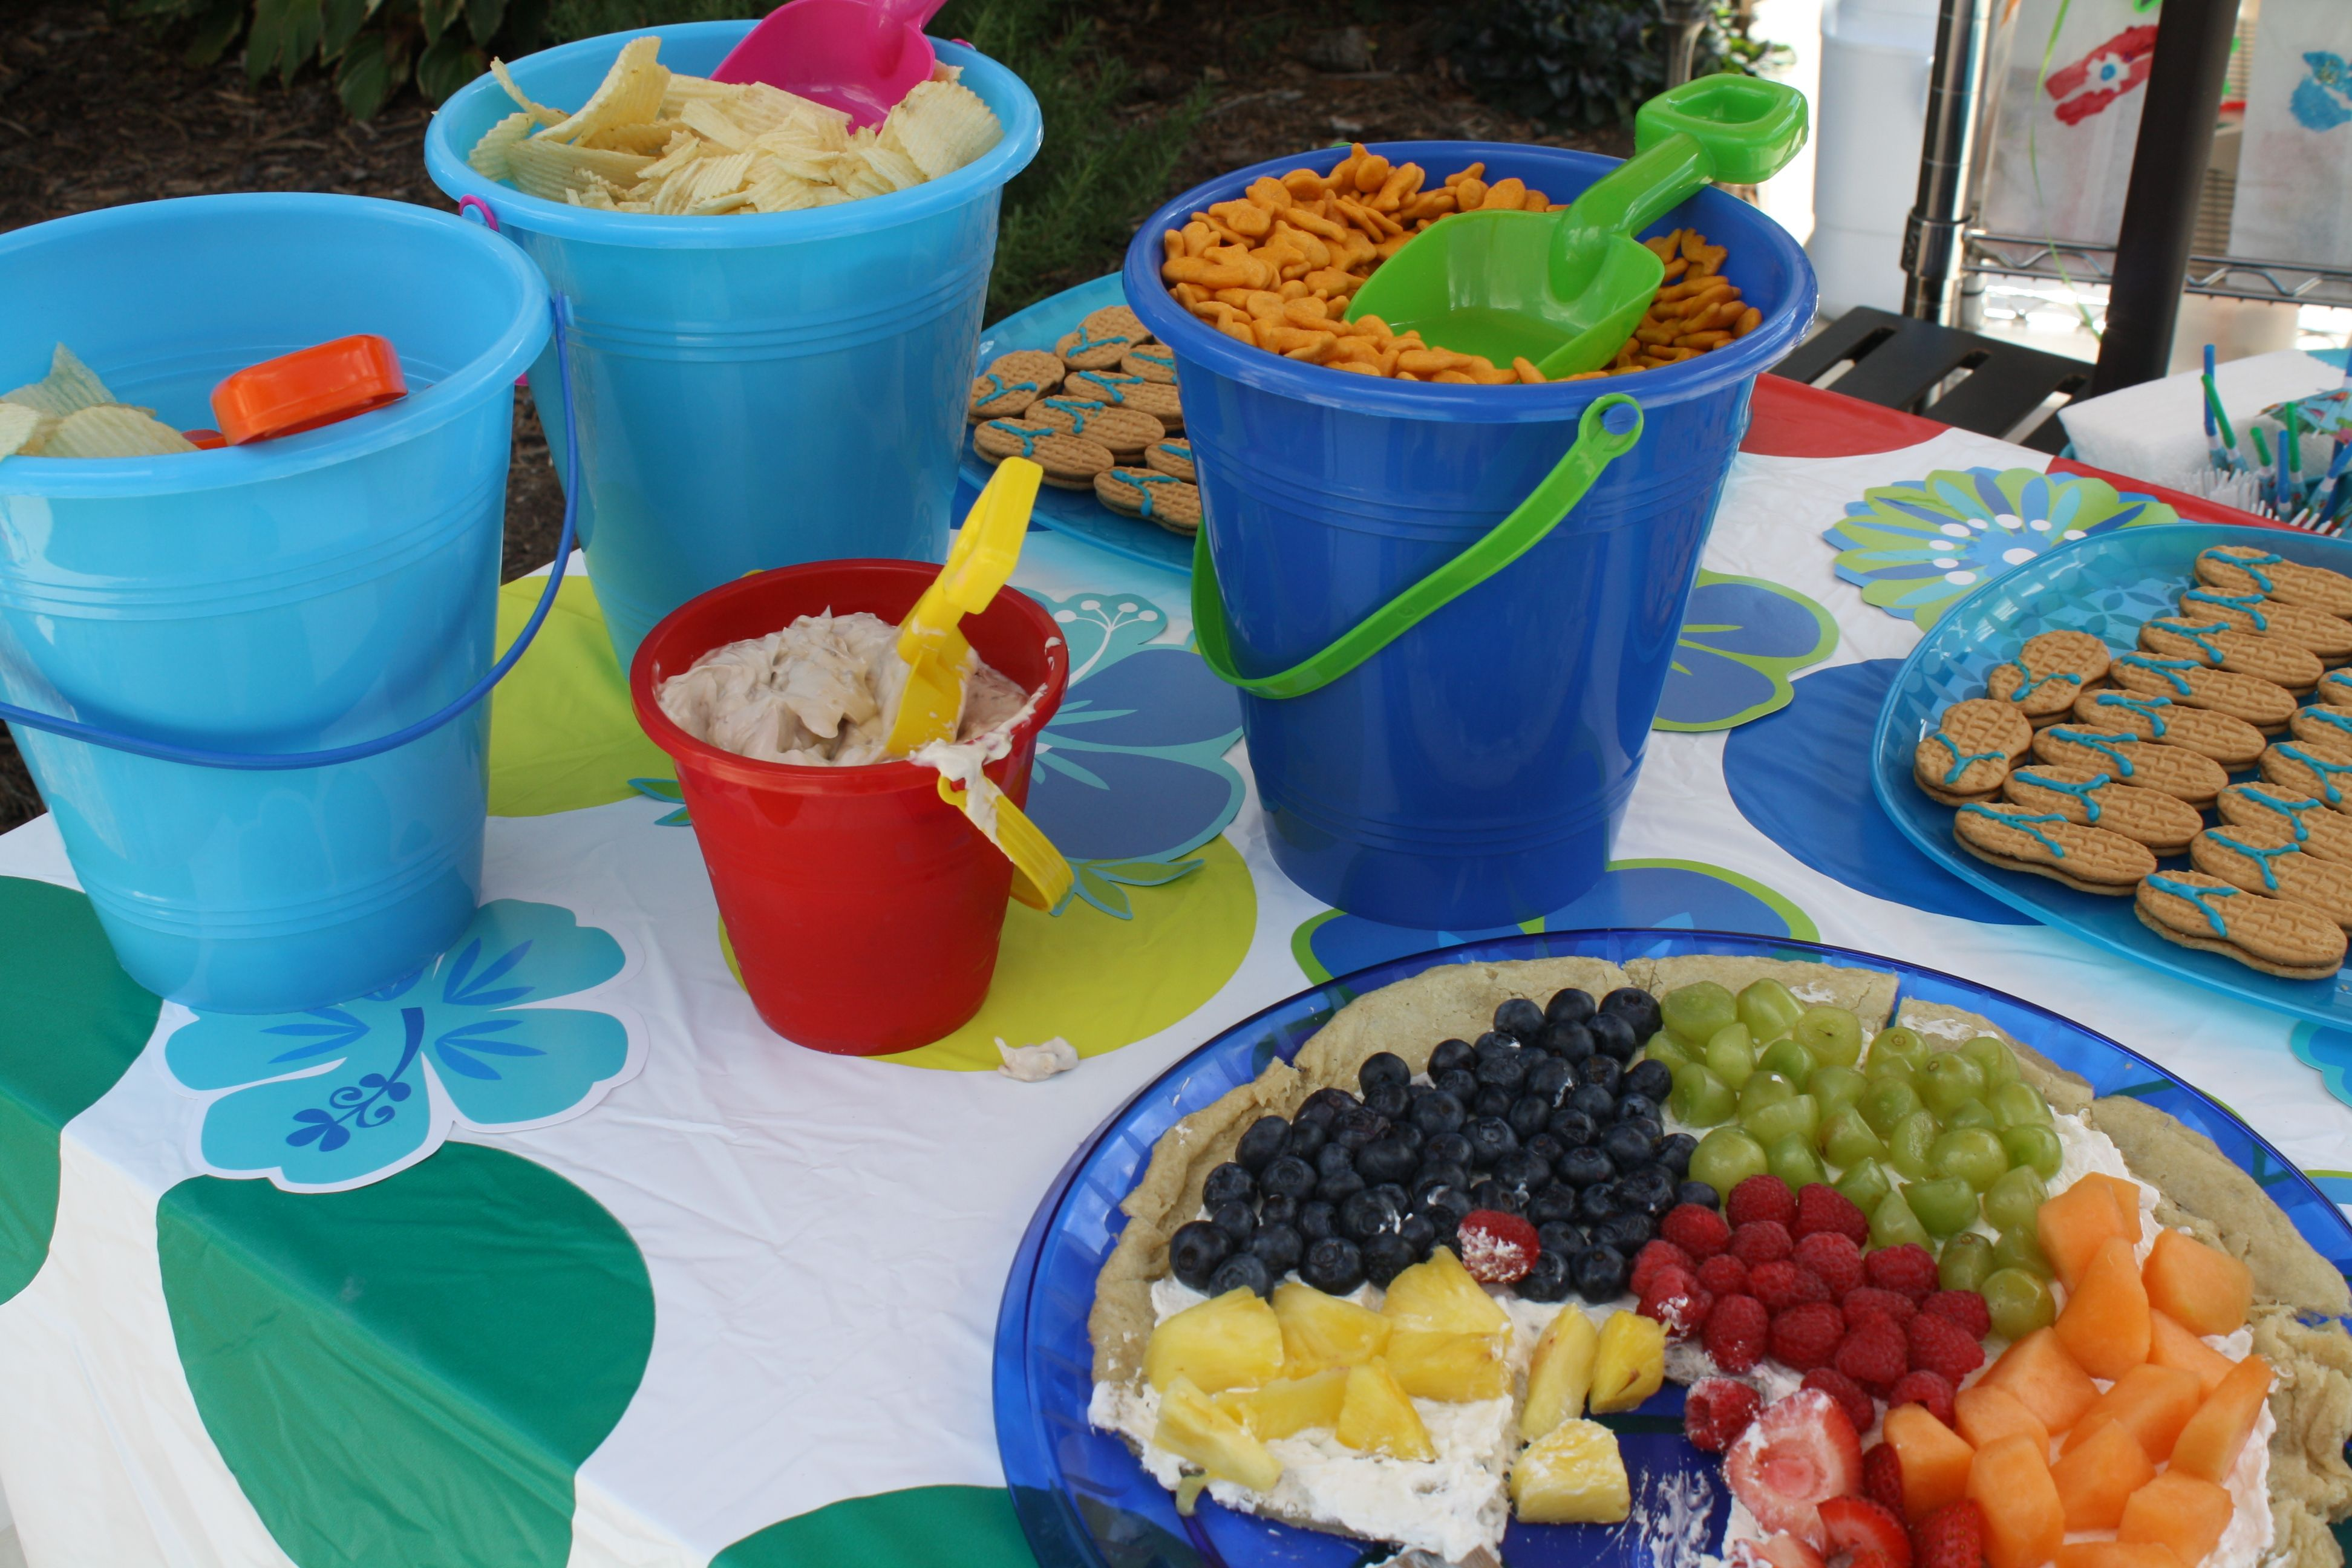 Pool party/sprinkle food - fun bucket idea | Pool party ...